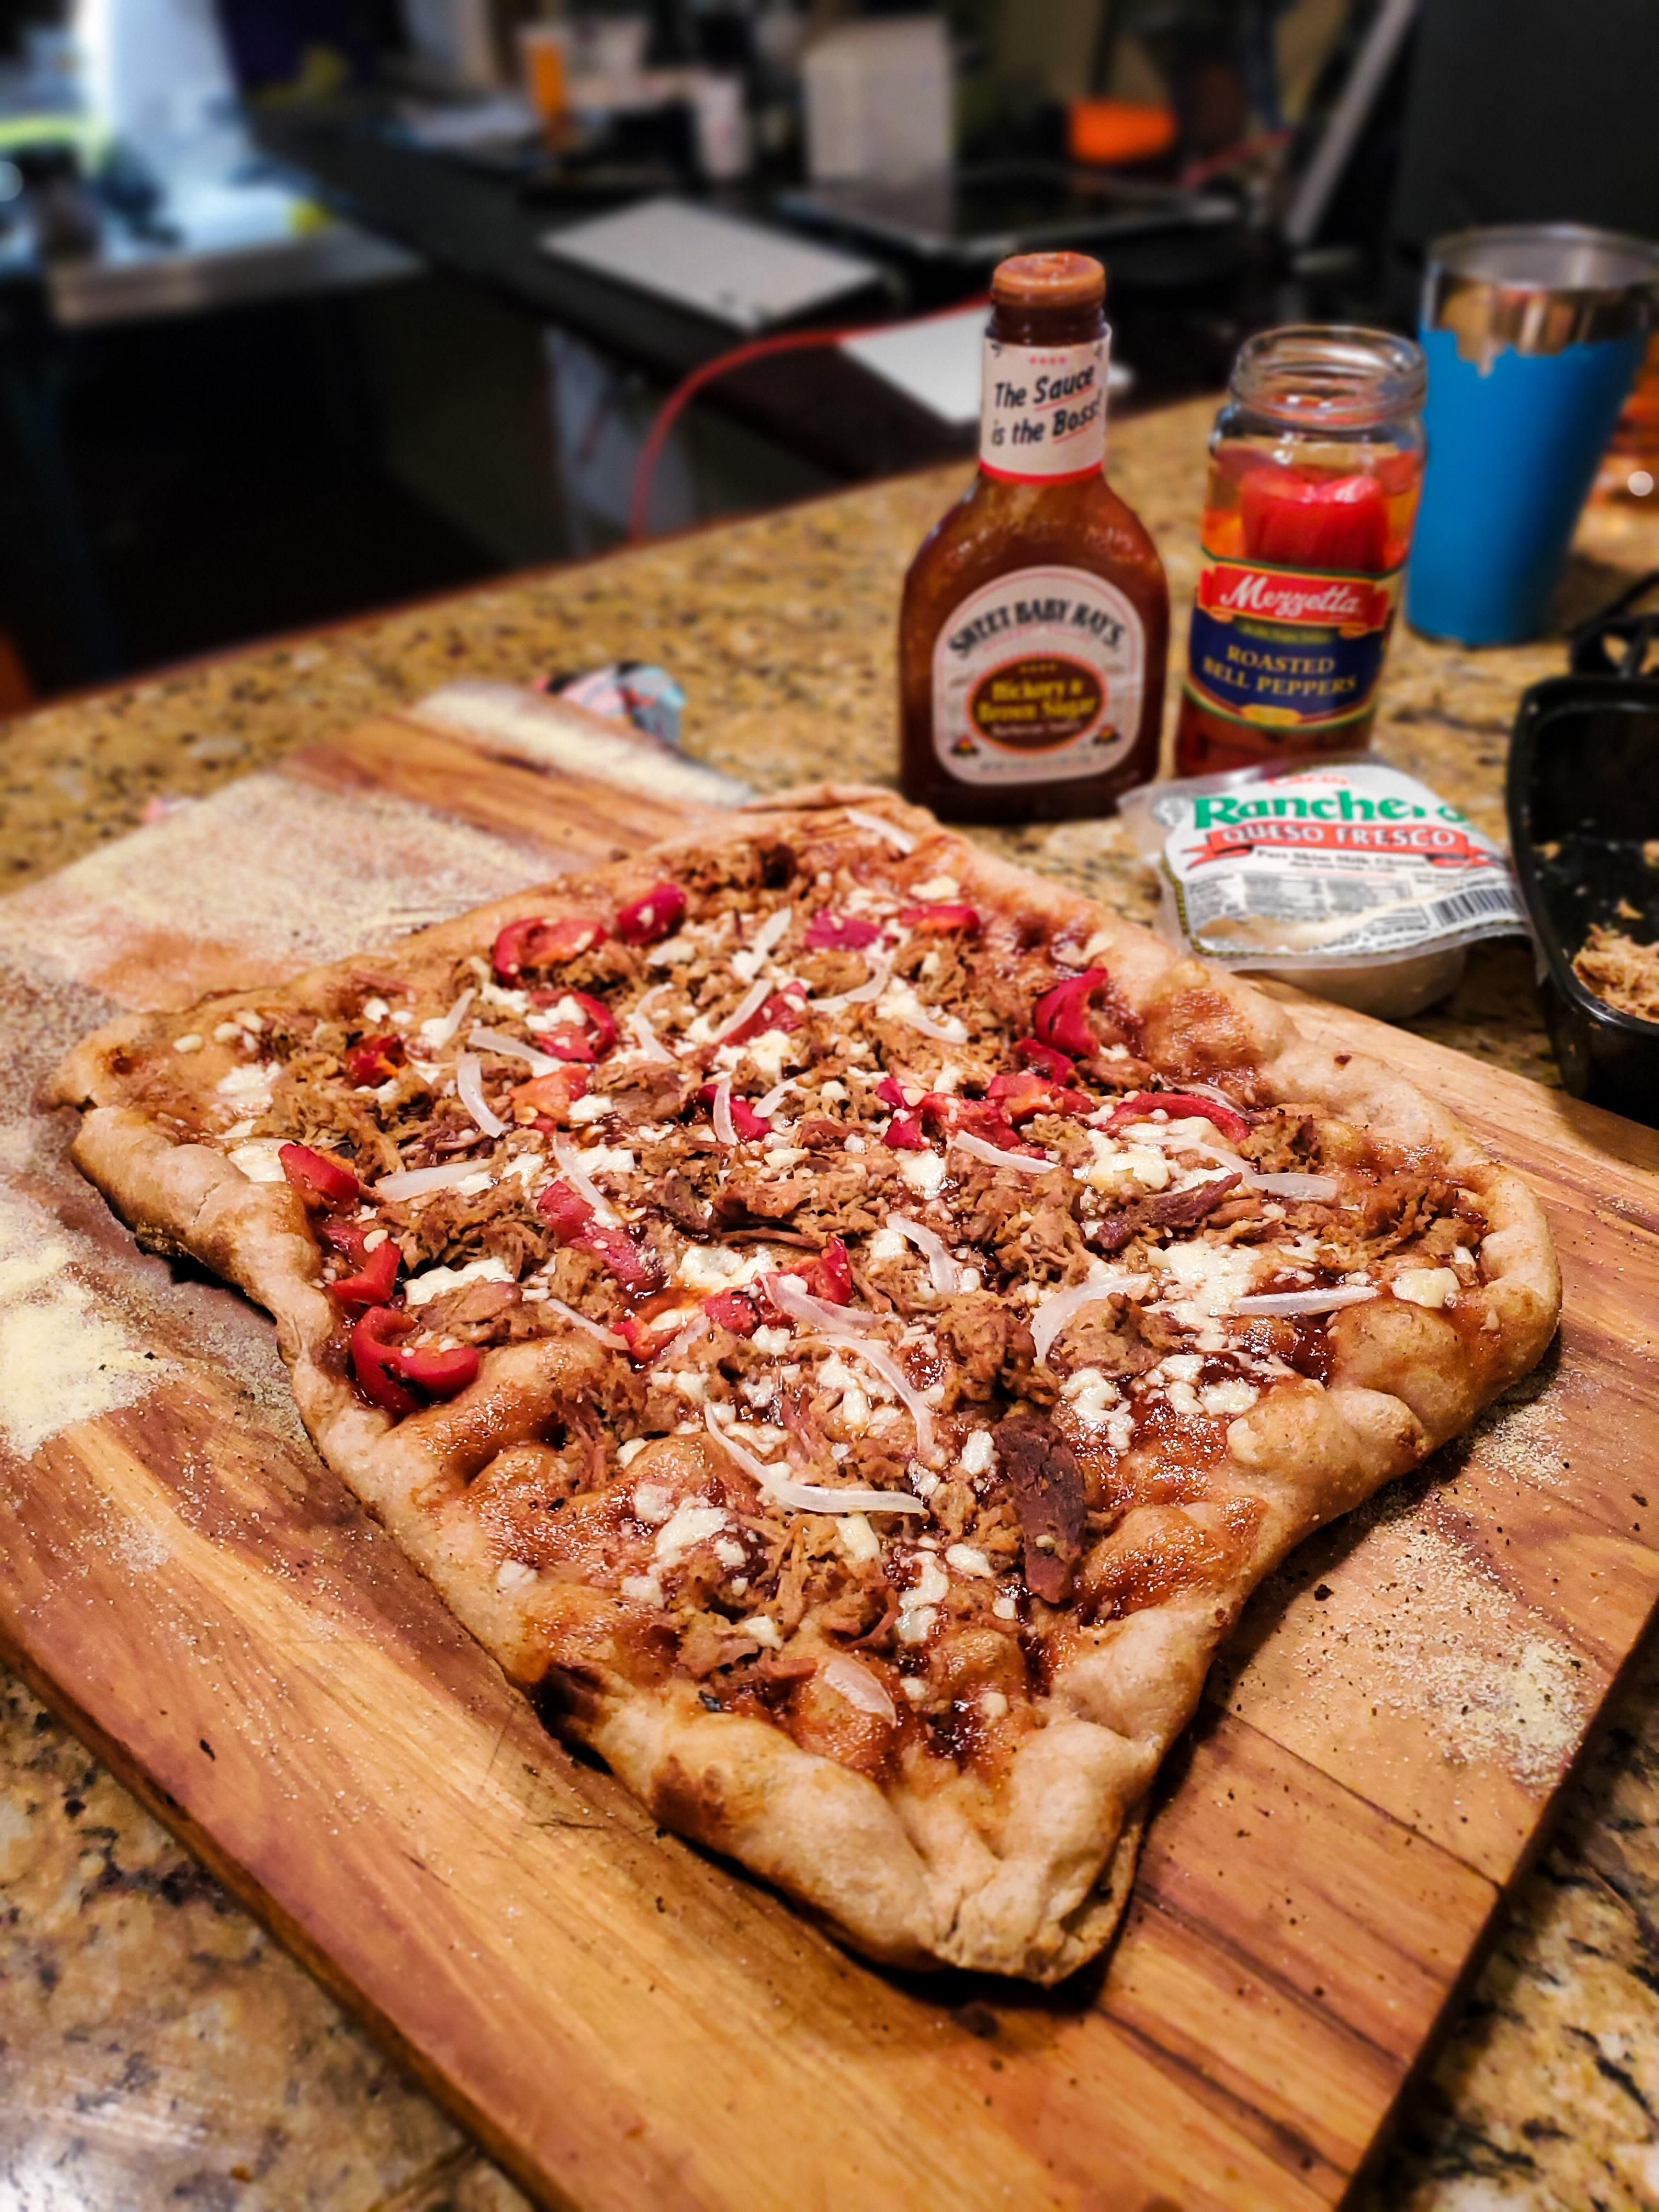 Pulled pork on whole wheat with BBQ sauce roasted red pepper Maui onion and queso fresco. #Pizza #Pizzas #food #foods